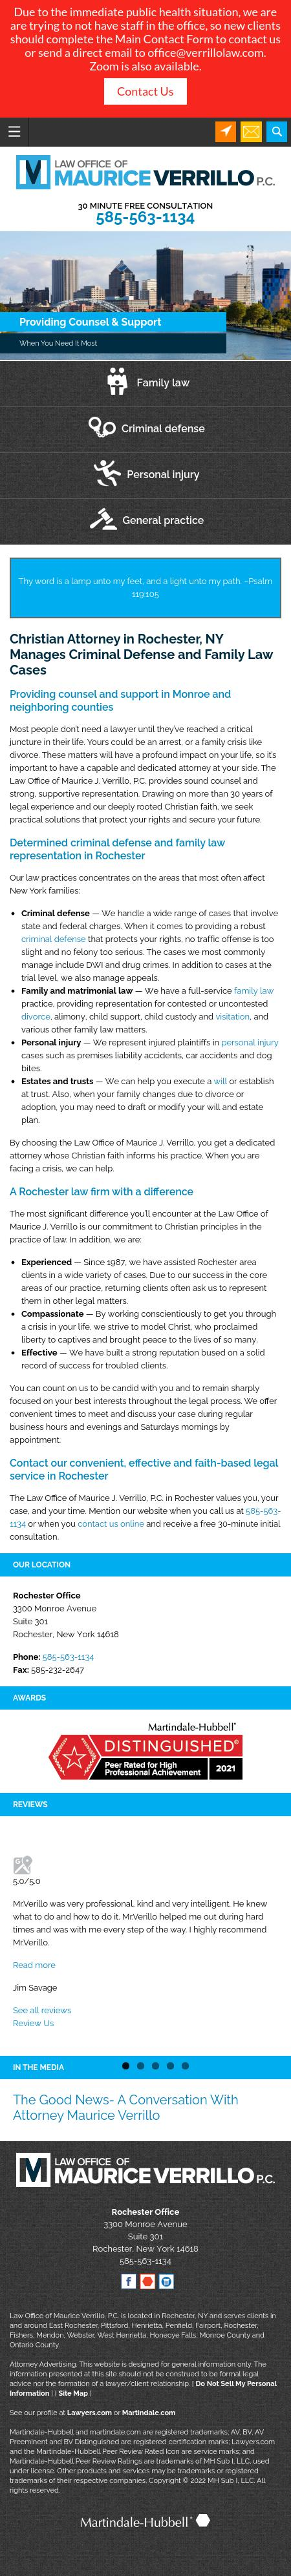 Verrillo Maurice J PC Esq. - Rochester NY Lawyers